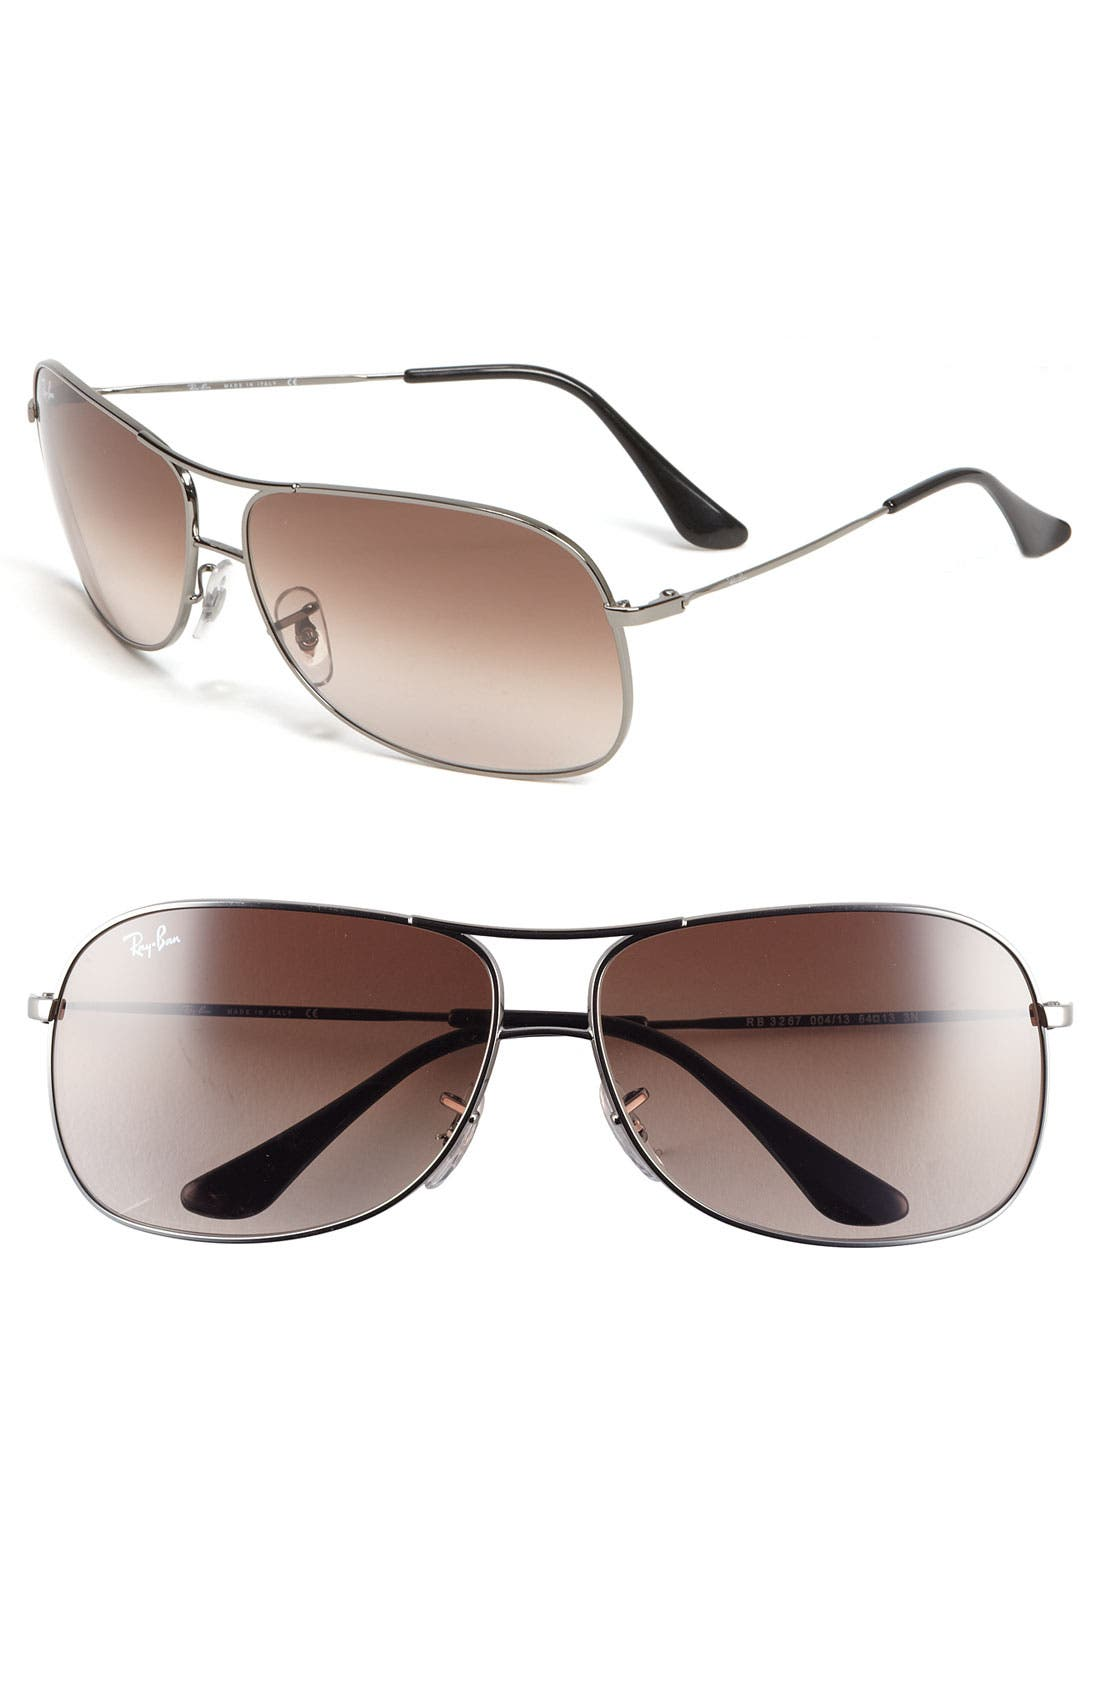 Alternate Image 1 Selected - Ray-Ban 'Square Aviator' 56mm Sunglasses